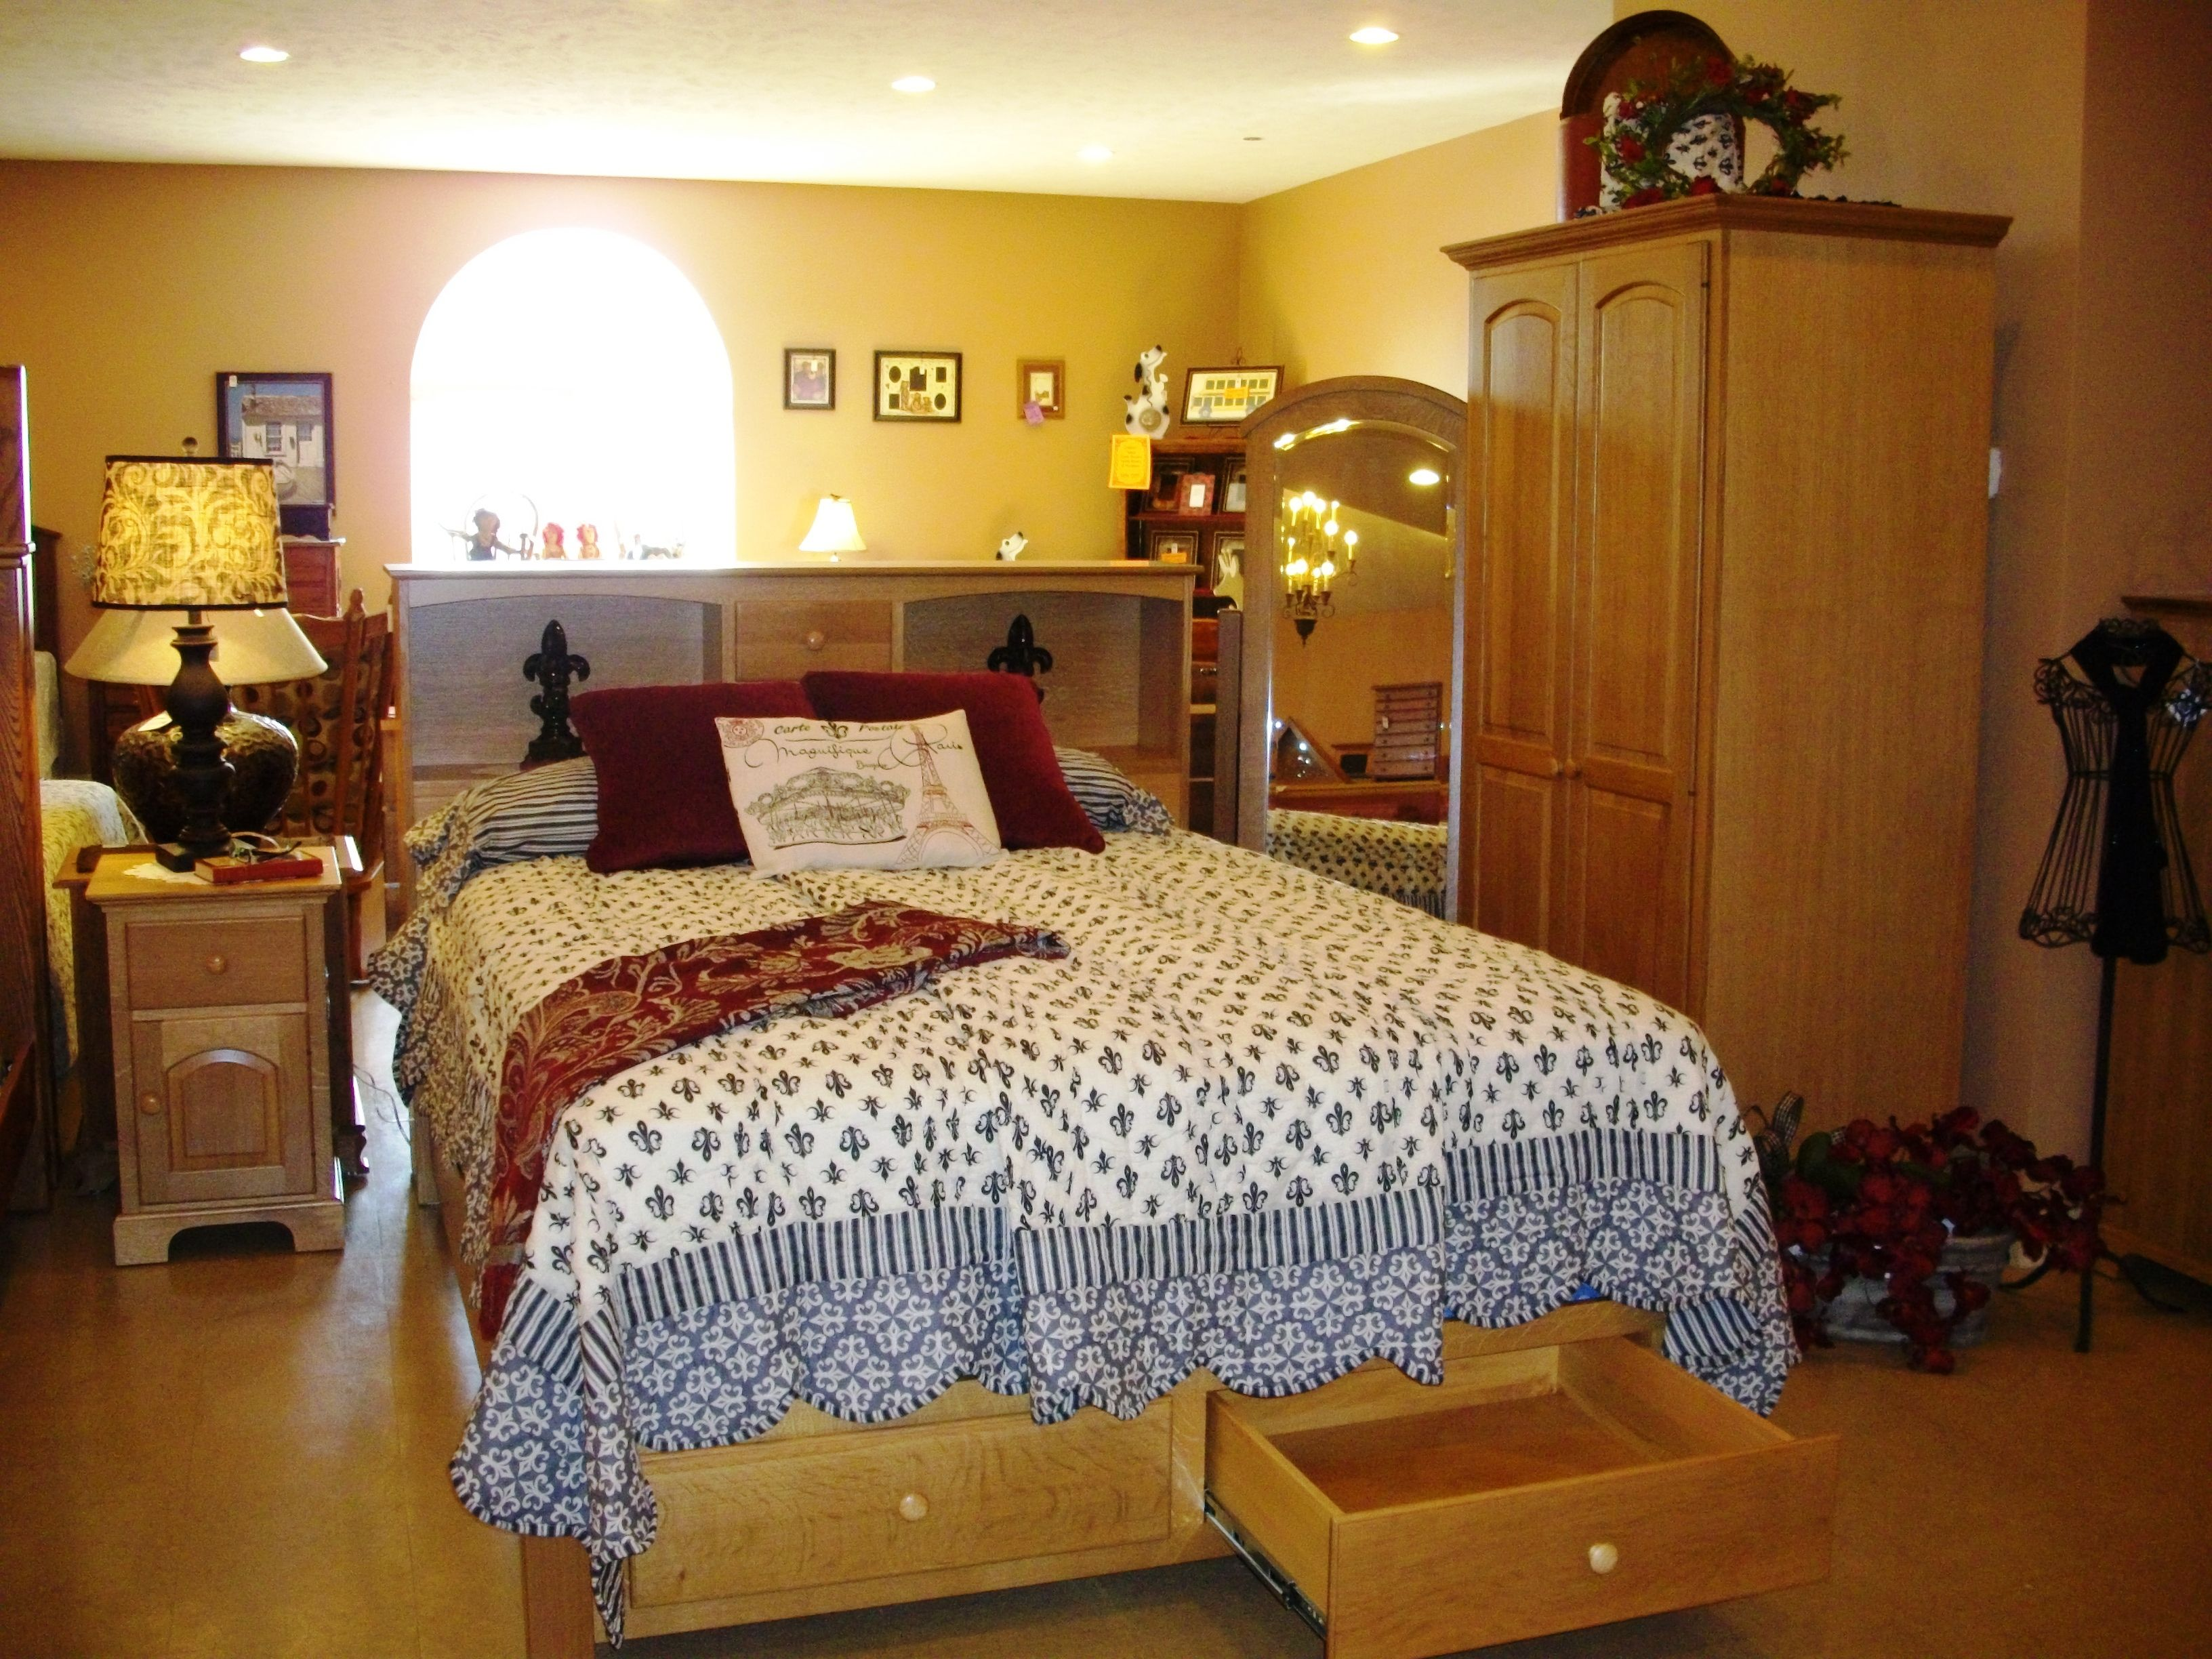 Bedroom Furniture available at The Amish Buggy 6075 Peach Street